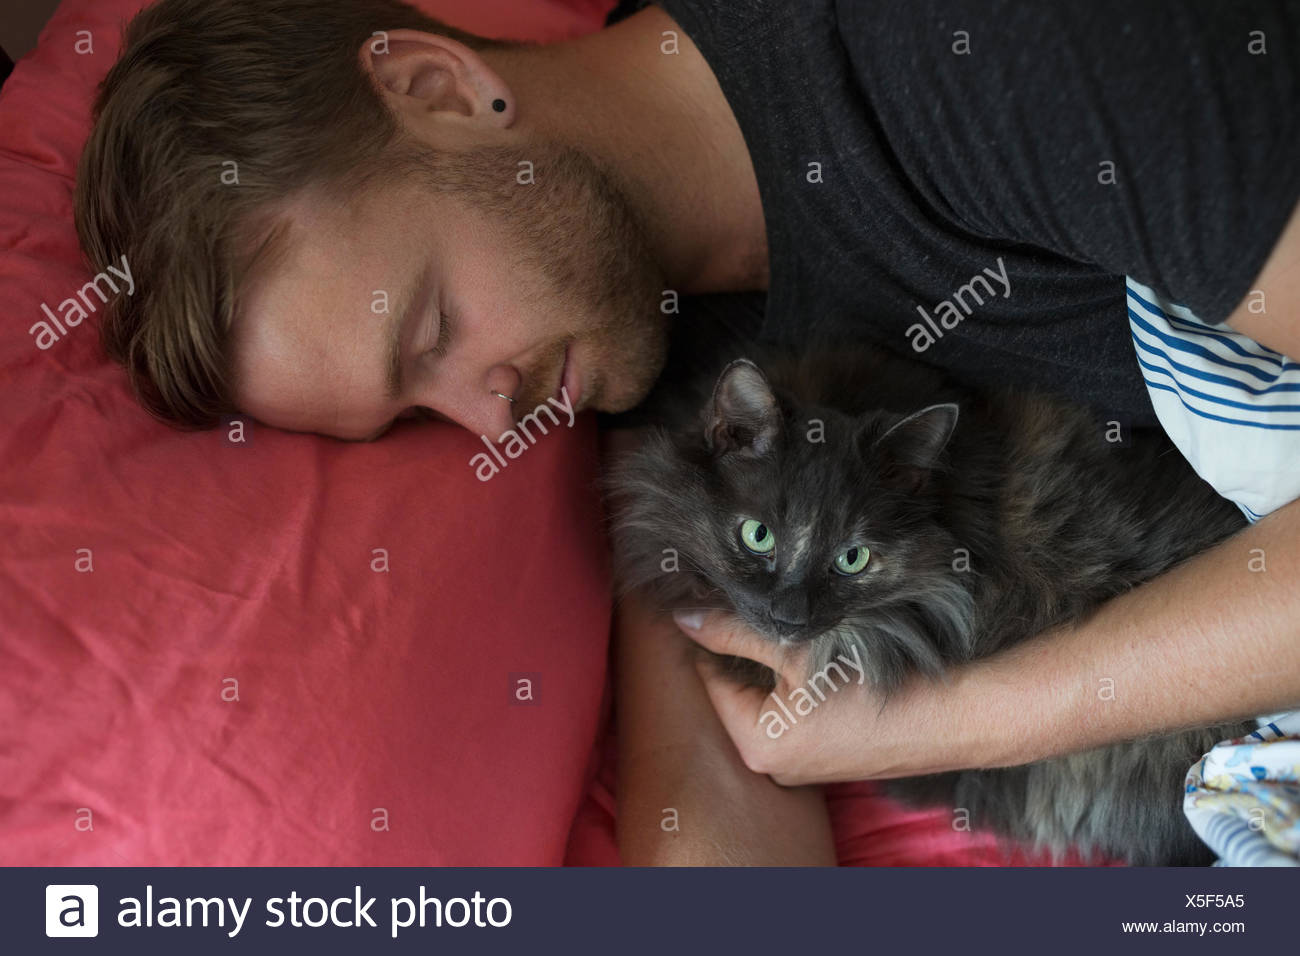 Man sleeping with cat in bed - Stock Image